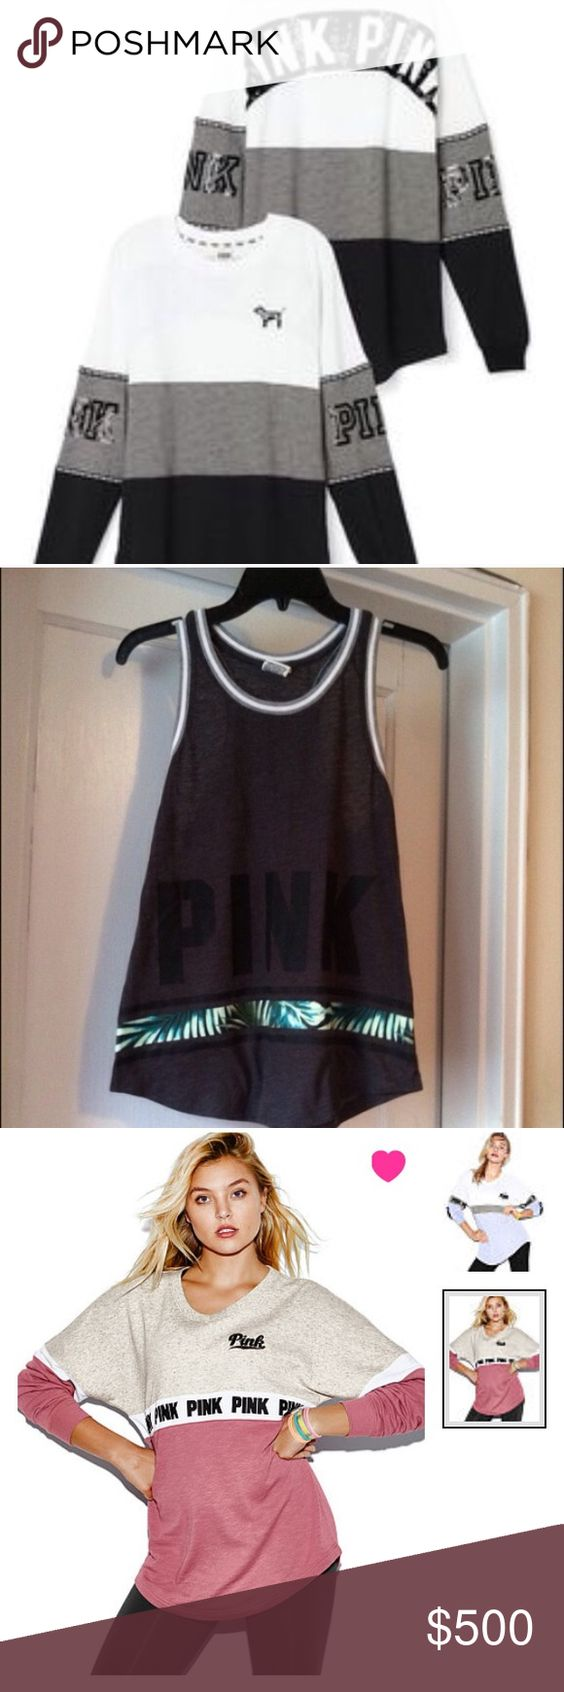 ISO NOT SELLING IN SEARCH OF NOT SELLING I'm looking to trade due to money issues at the moment PINK Victoria's Secret Tops